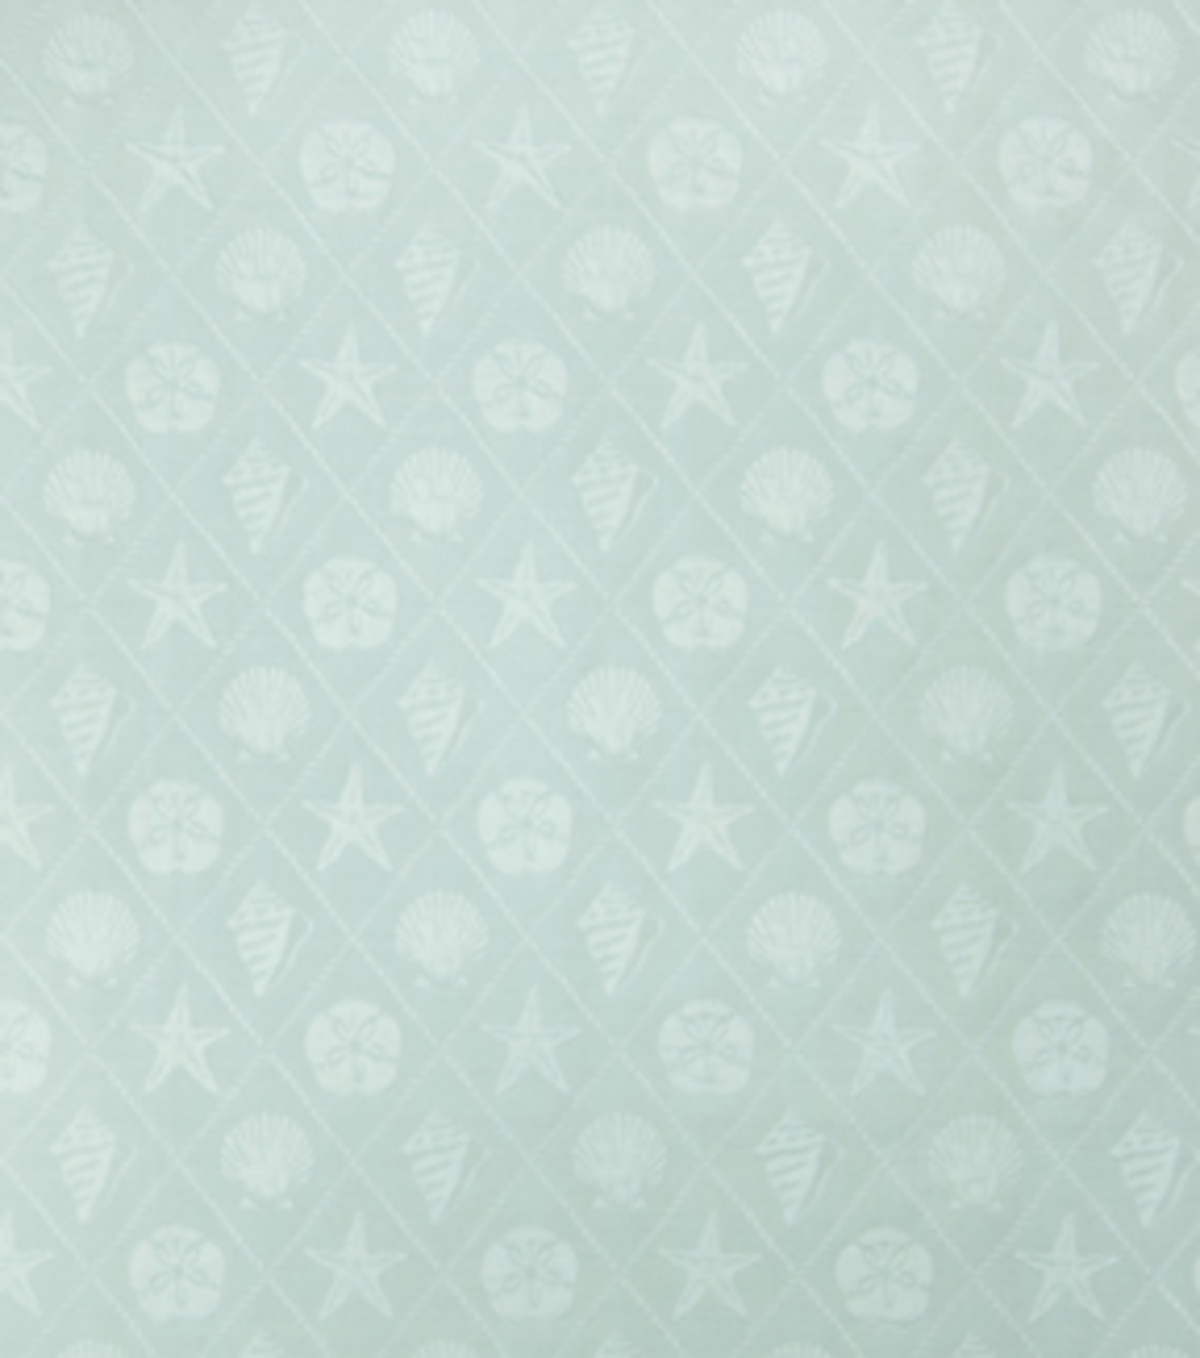 Home Decor 8\u0022x8\u0022 Fabric Swatch-Eaton Square Checkmate Spray